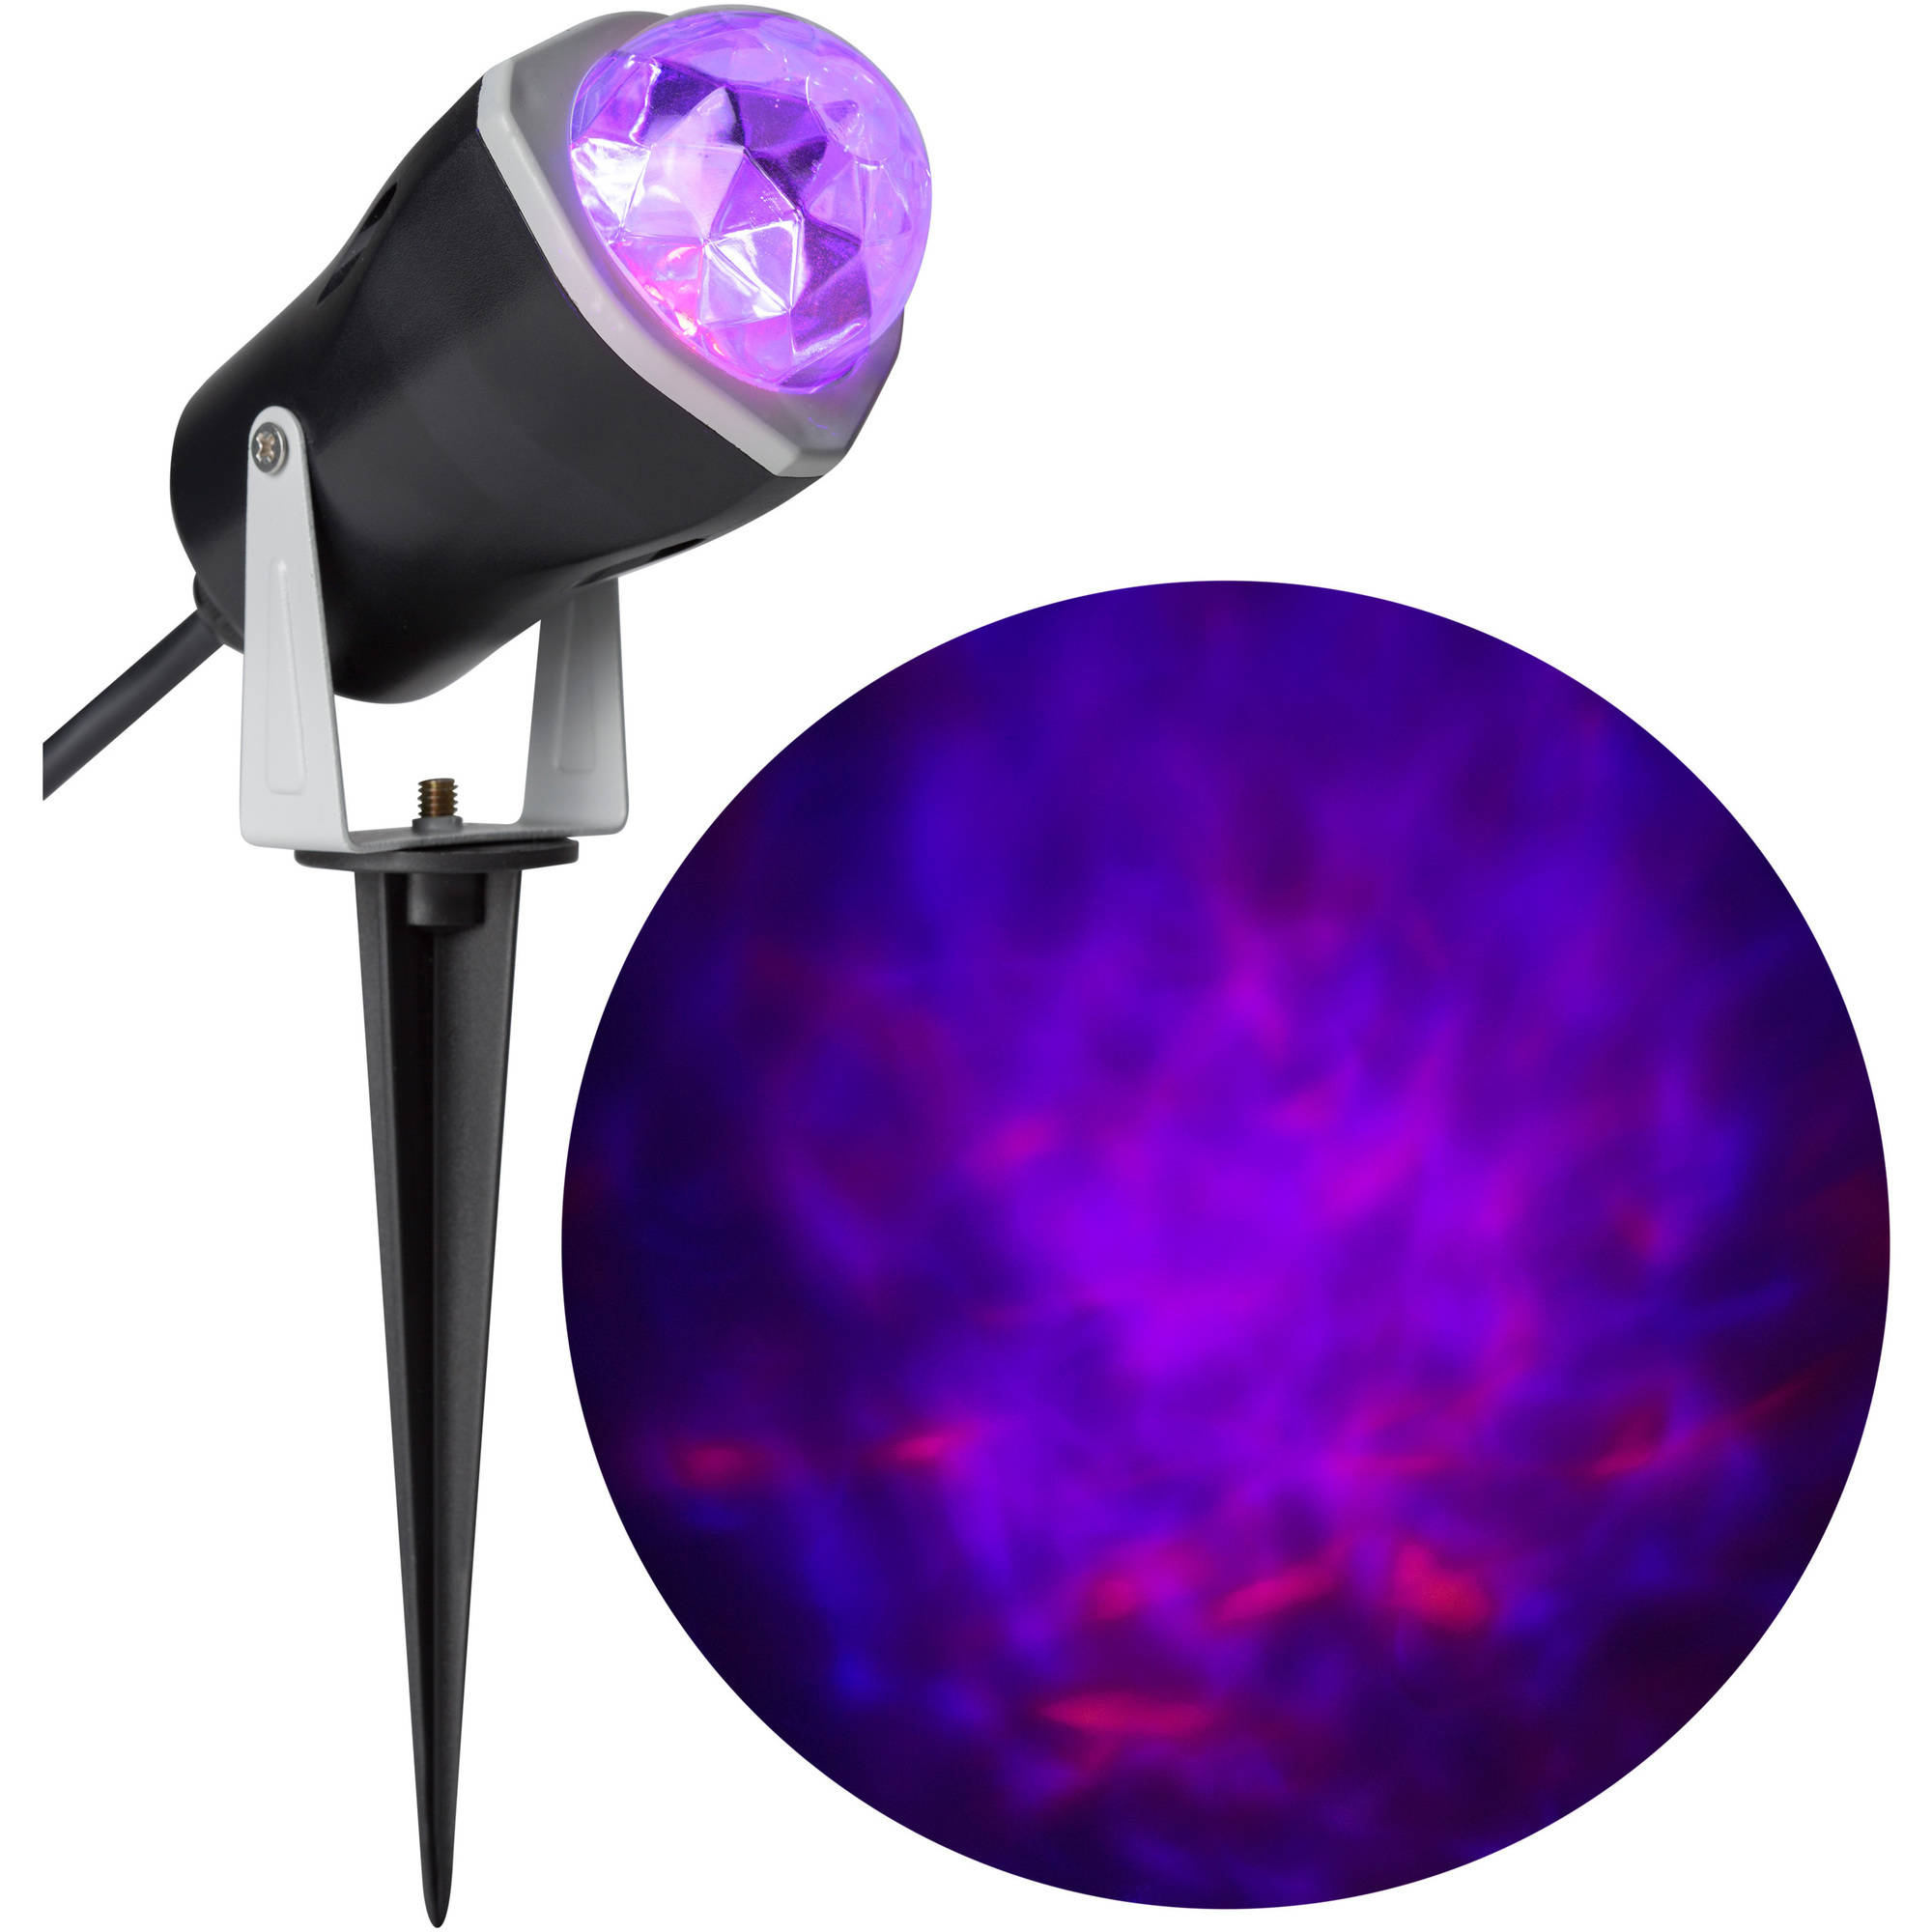 Gemmy Lightshow Projection Spot Light Fire and Ice (Purple Purple Orange) Halloween Decoration